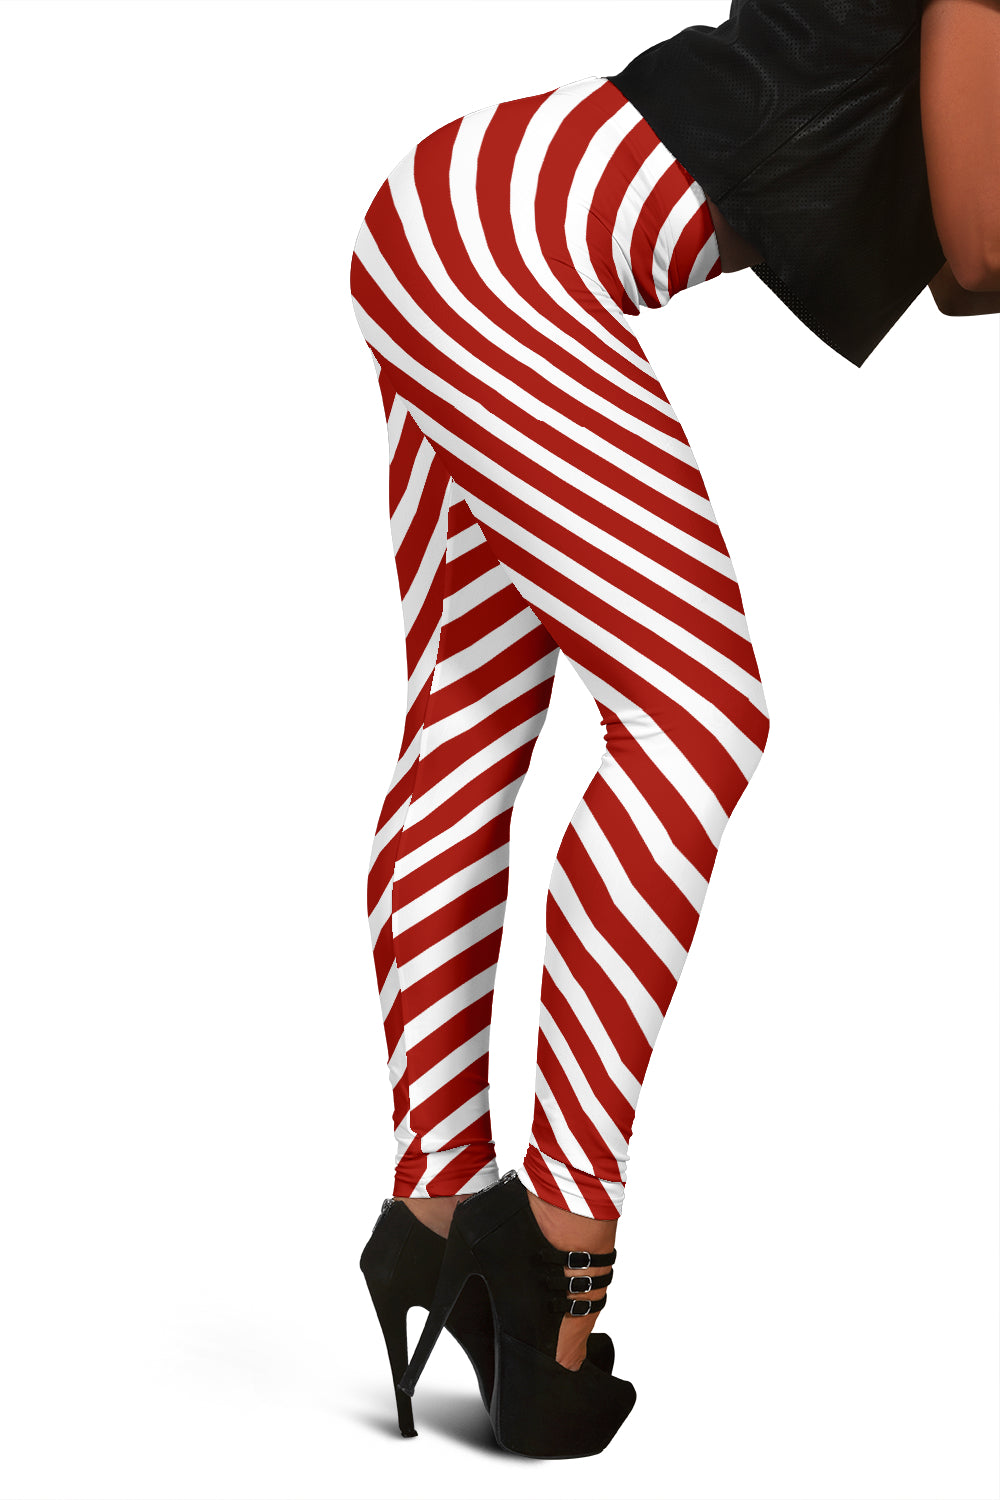 Christmas Candy Cane Leggings For Women Who Love Dressing Up